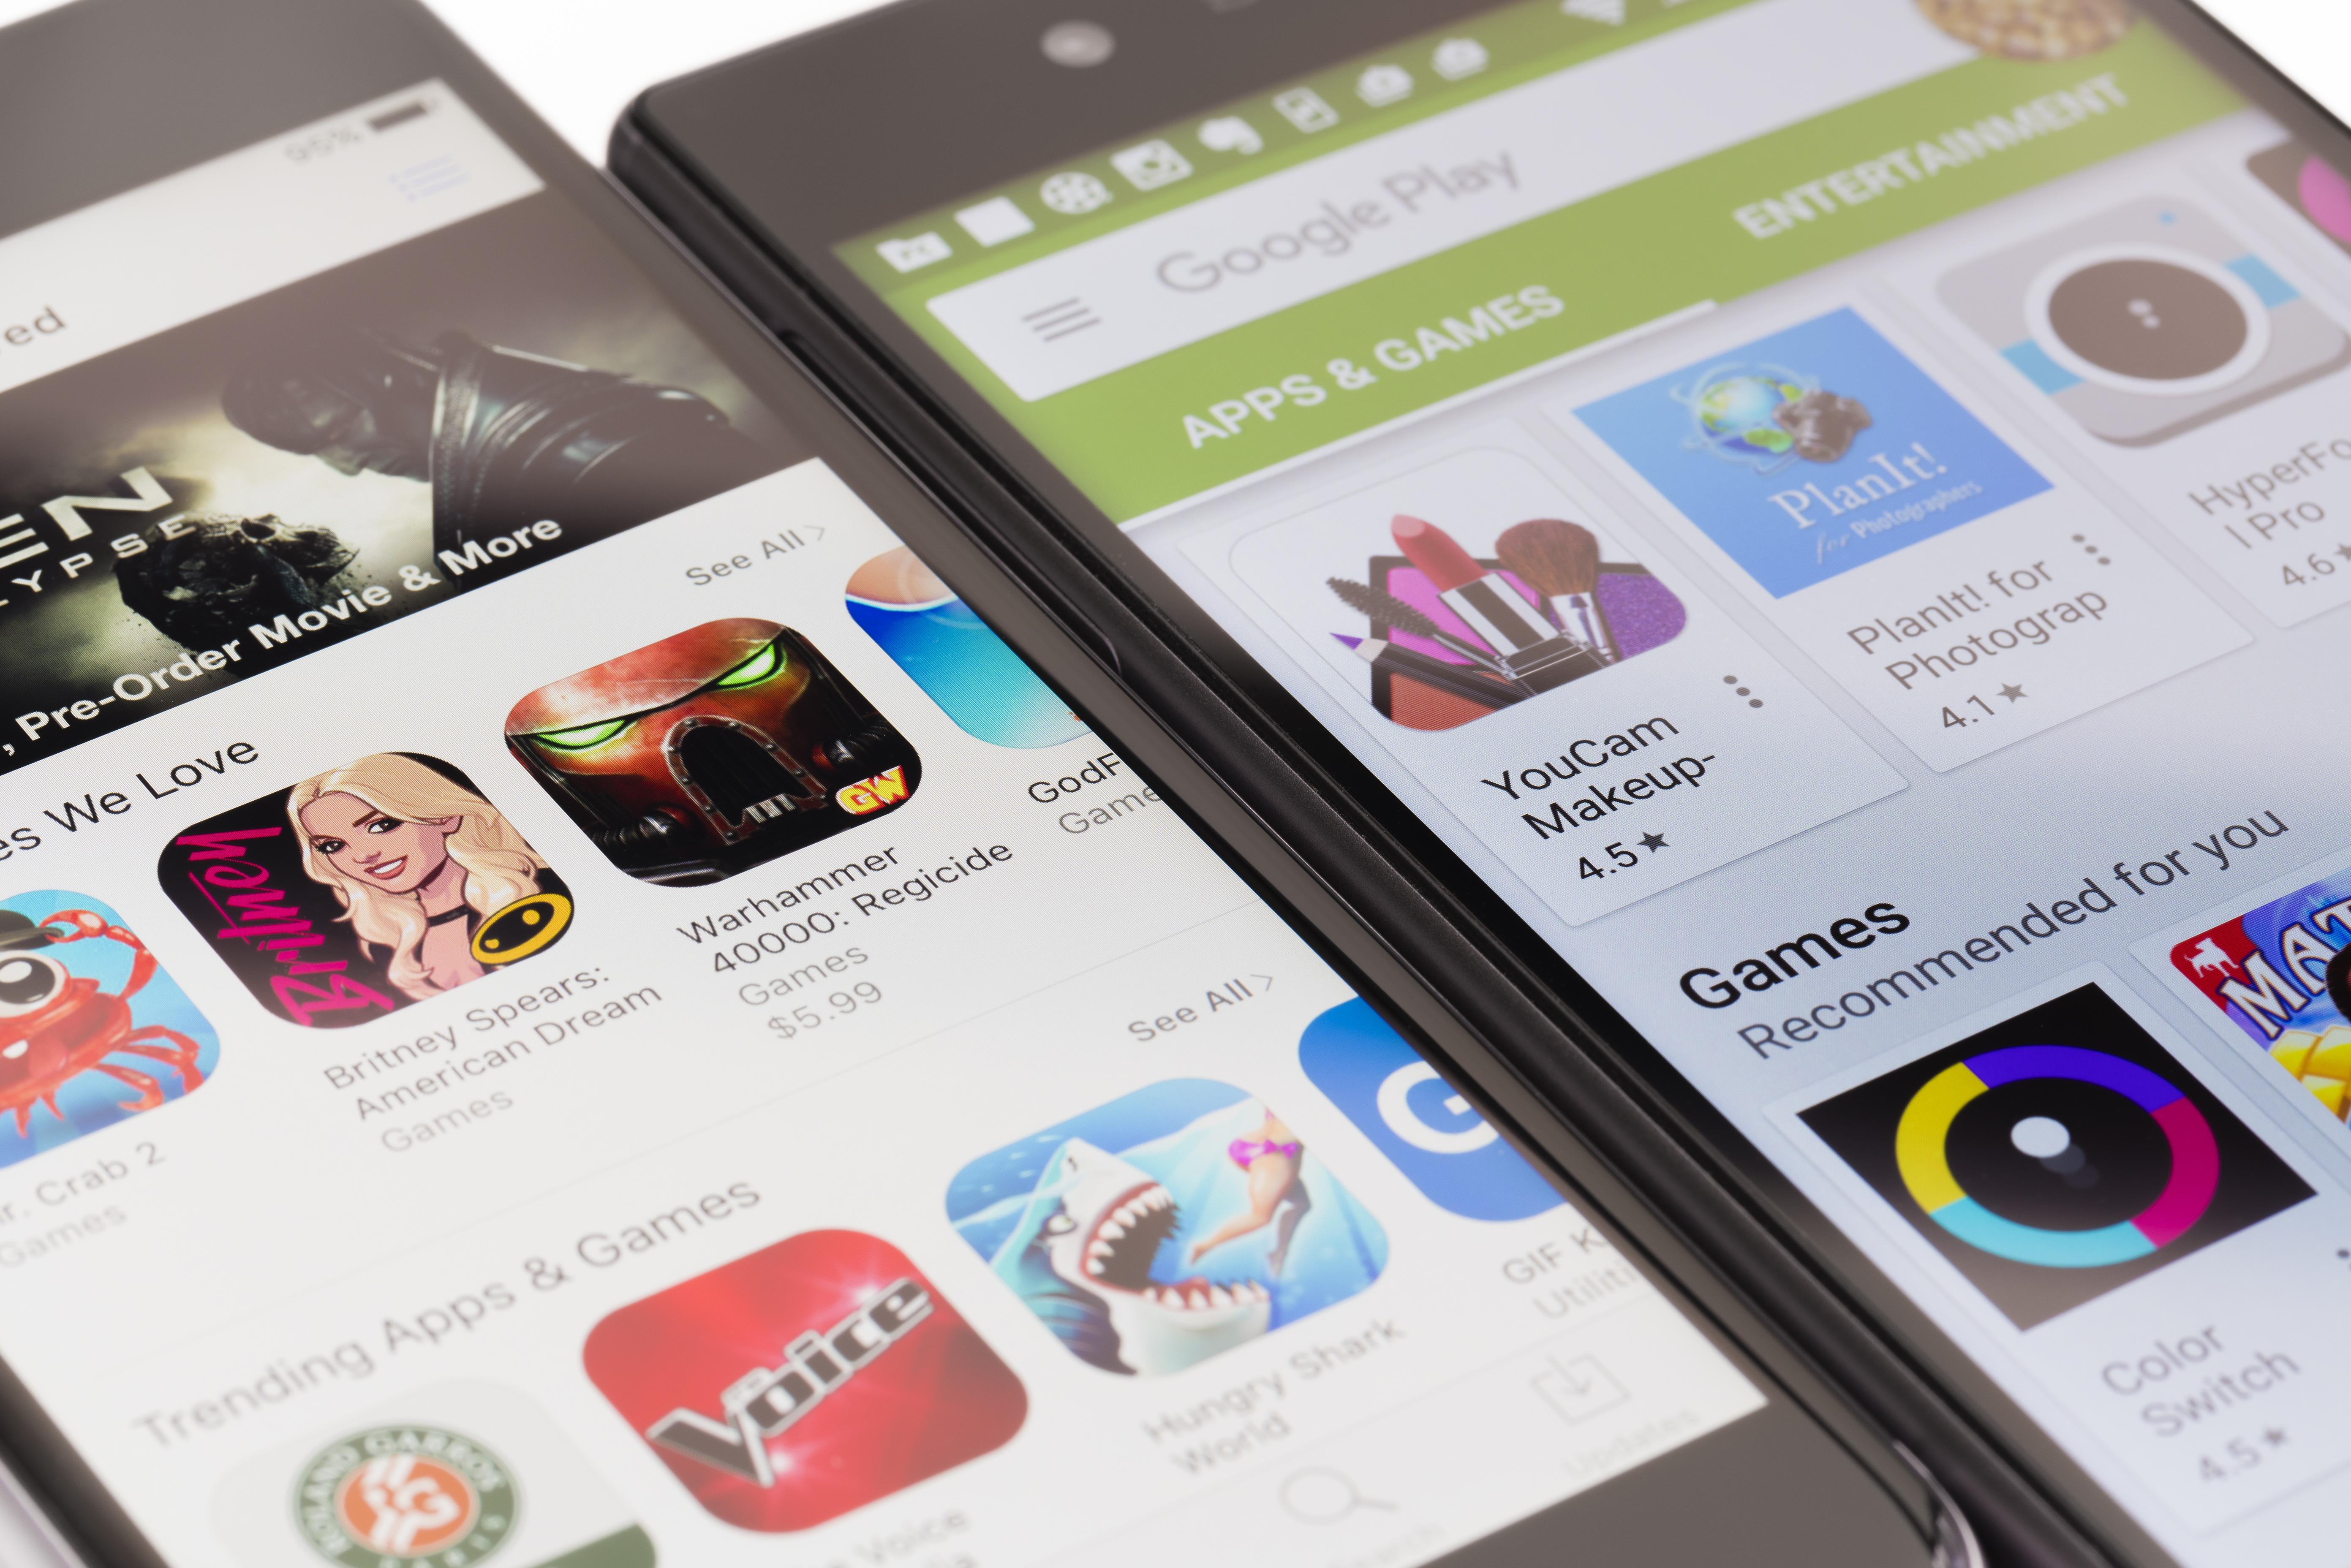 Melbourne, Australia - May 23, 2016: Close-up view of Google Play Store on Android smartphone and Apple's App Store on iPhone. Both stores allow users to download app, music, movies and TV shows.